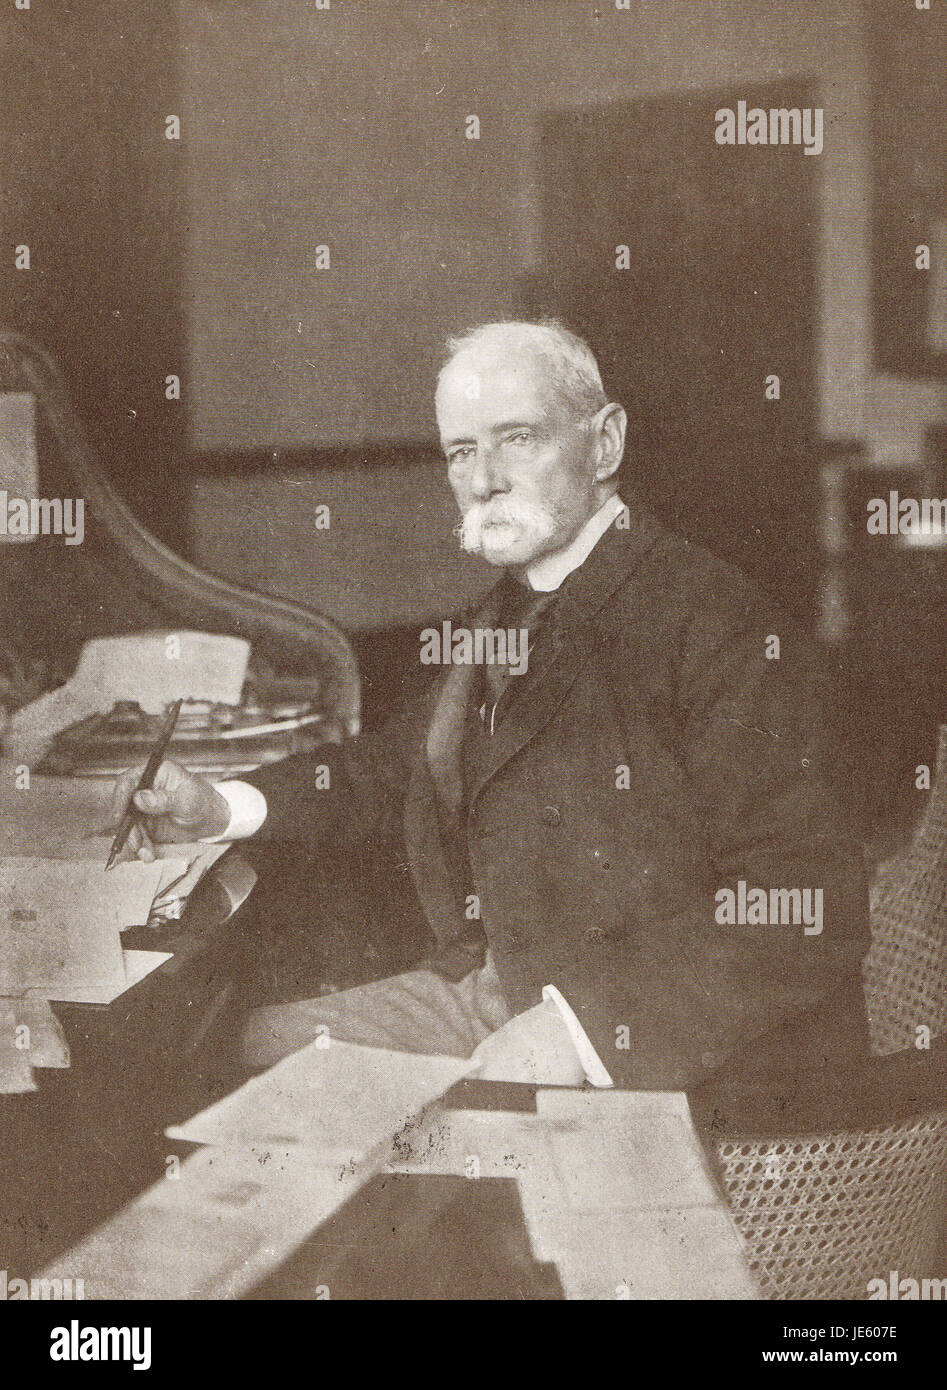 Field Marshal Lord Roberts 1832-1914 - Stock Image